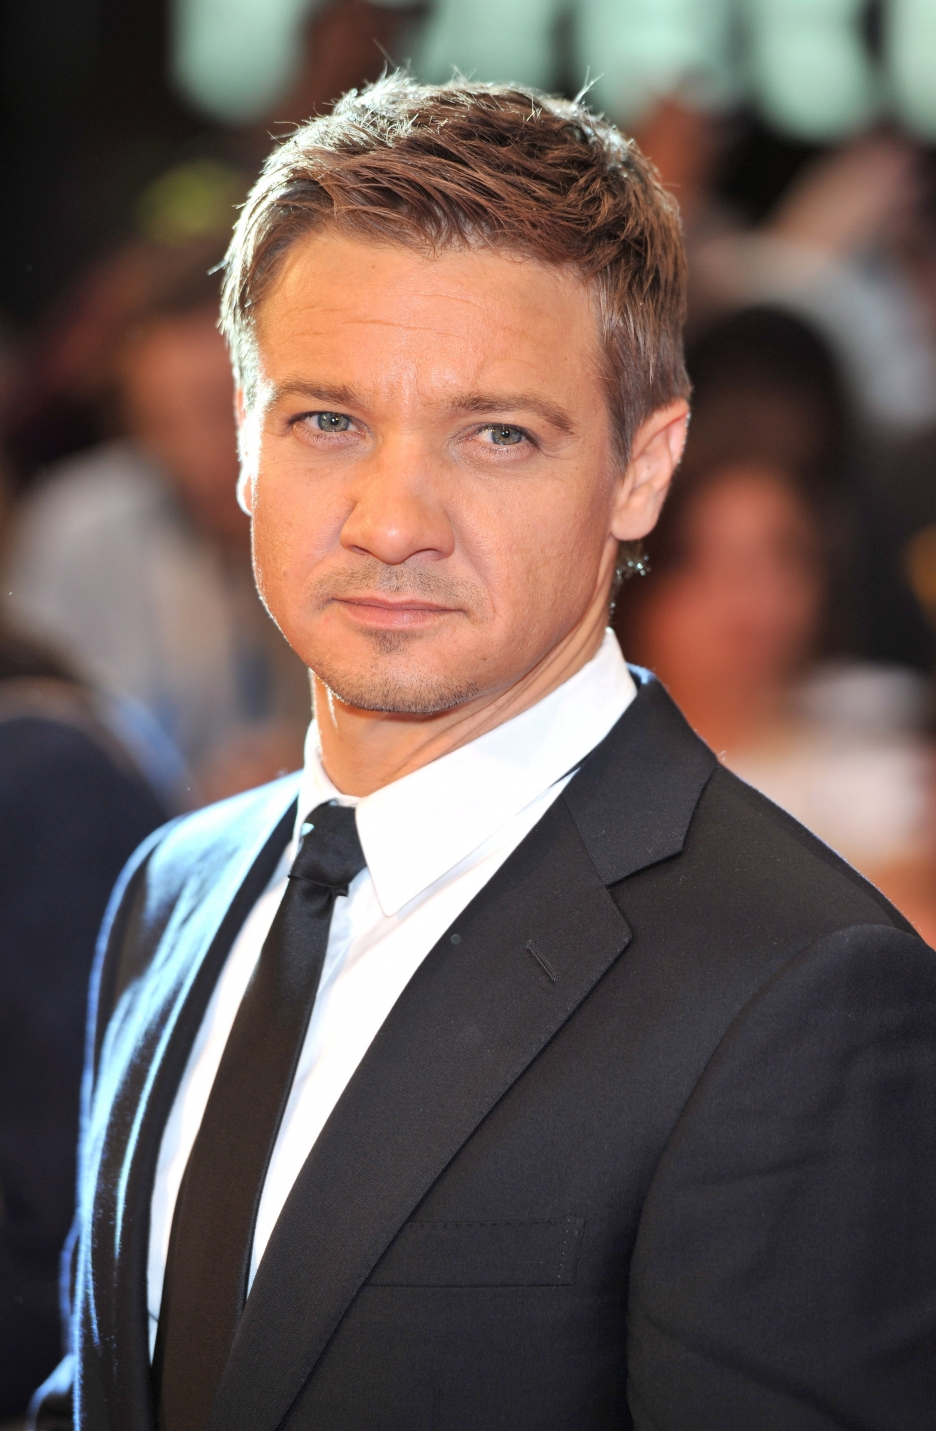 The 46-year old son of father Lee Renner and mother Valerie Cearley, 178 cm tall Jeremy Renner in 2017 photo